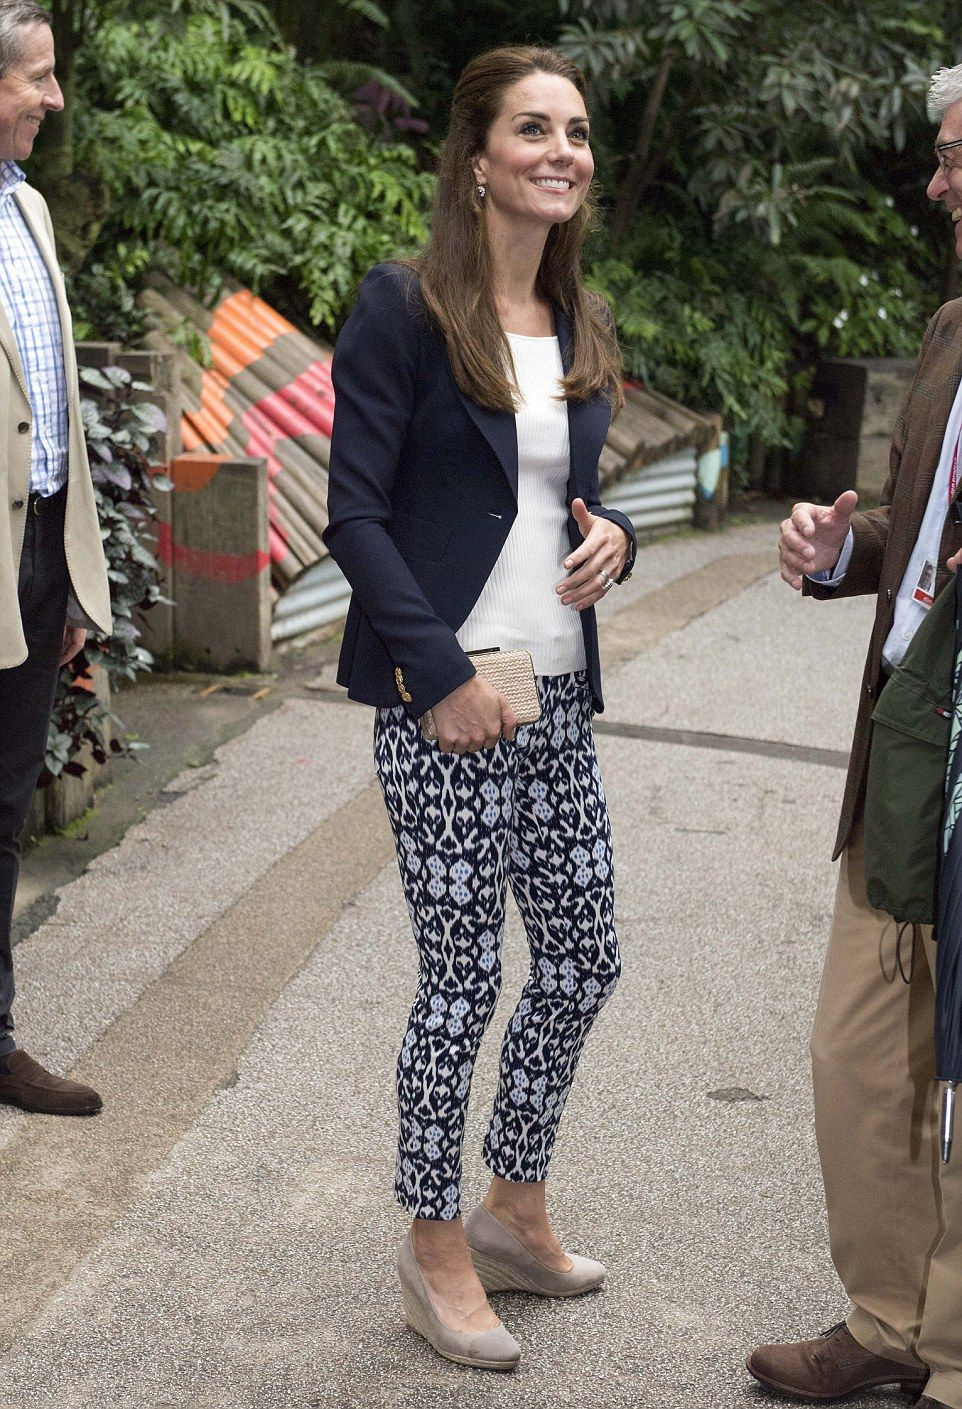 Kate Middleton and Prince William visit the Eden Project - September 2, 2016  | Daily